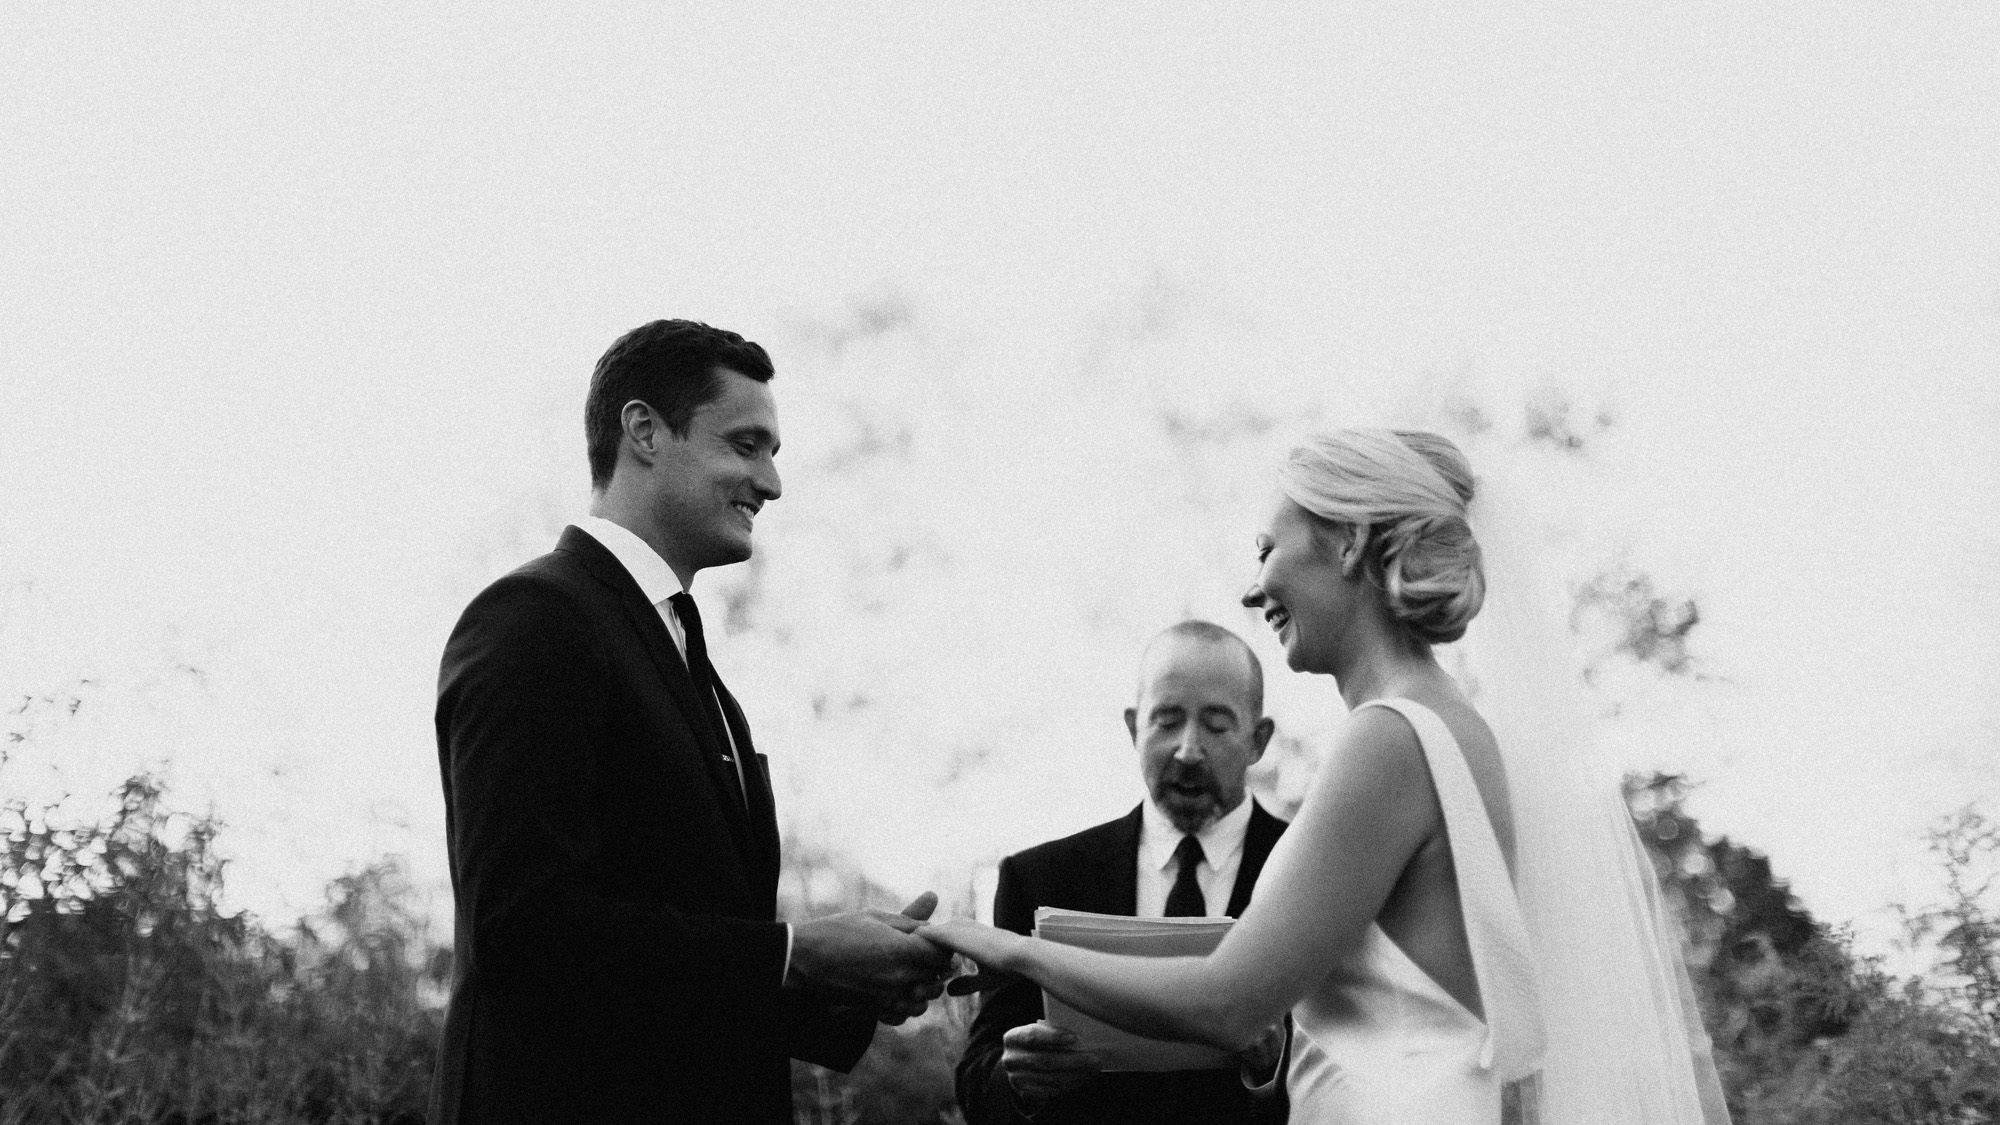 upstate_new_york_wedding_alec_vanderboom-0072.jpg